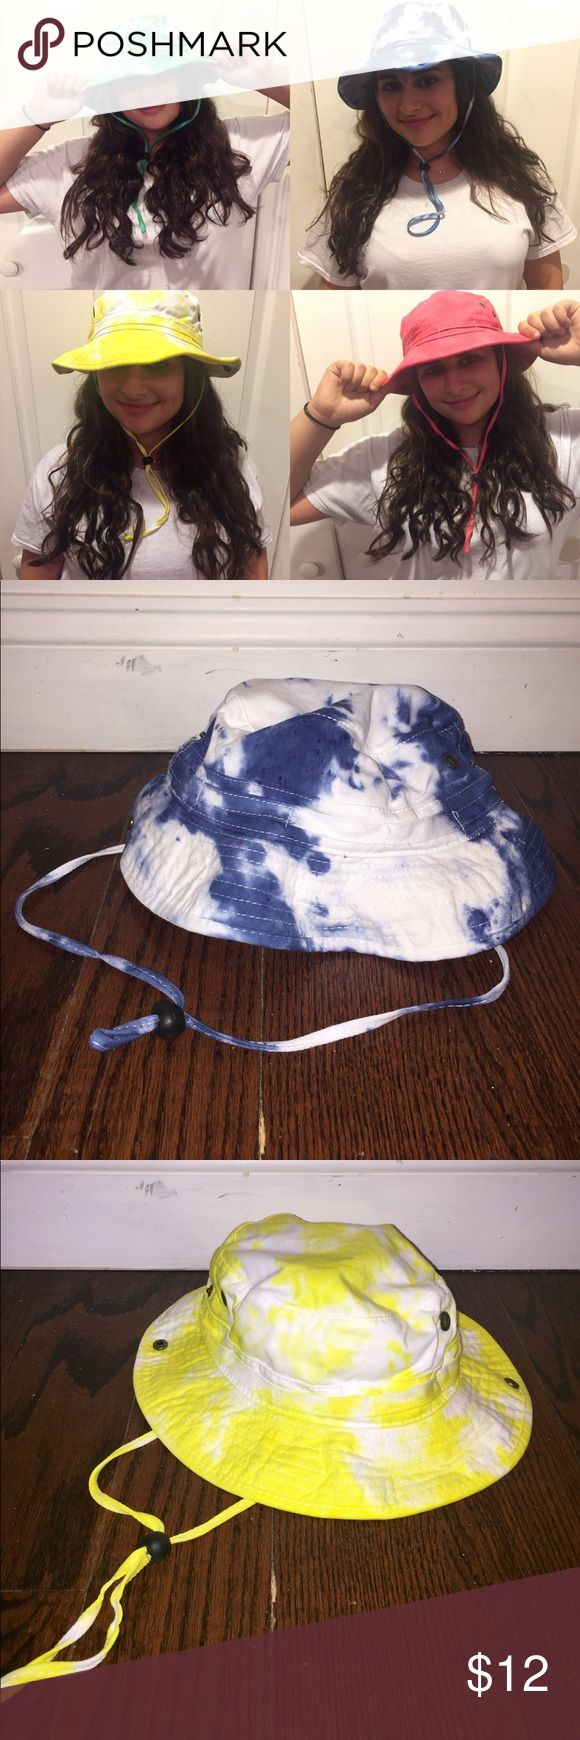 Tie Dye Bucket Hat with String (Festival wear) Fashion Cotton Bucket Hats Caps with String Self-fabric Chin Cord, 4 Big Meshed Brass Eyelet and Side Snaps. Fits best from hat size Medium to Large. Aprox 58cm. Crown: 3 Inches, Brim: 2.5 Inches. 100% Cotton. Made in China. Tag: Bucket with string. ***Available in blue, red, yellow, or green. When purchasing let me know what color :)*** Accessories Hats